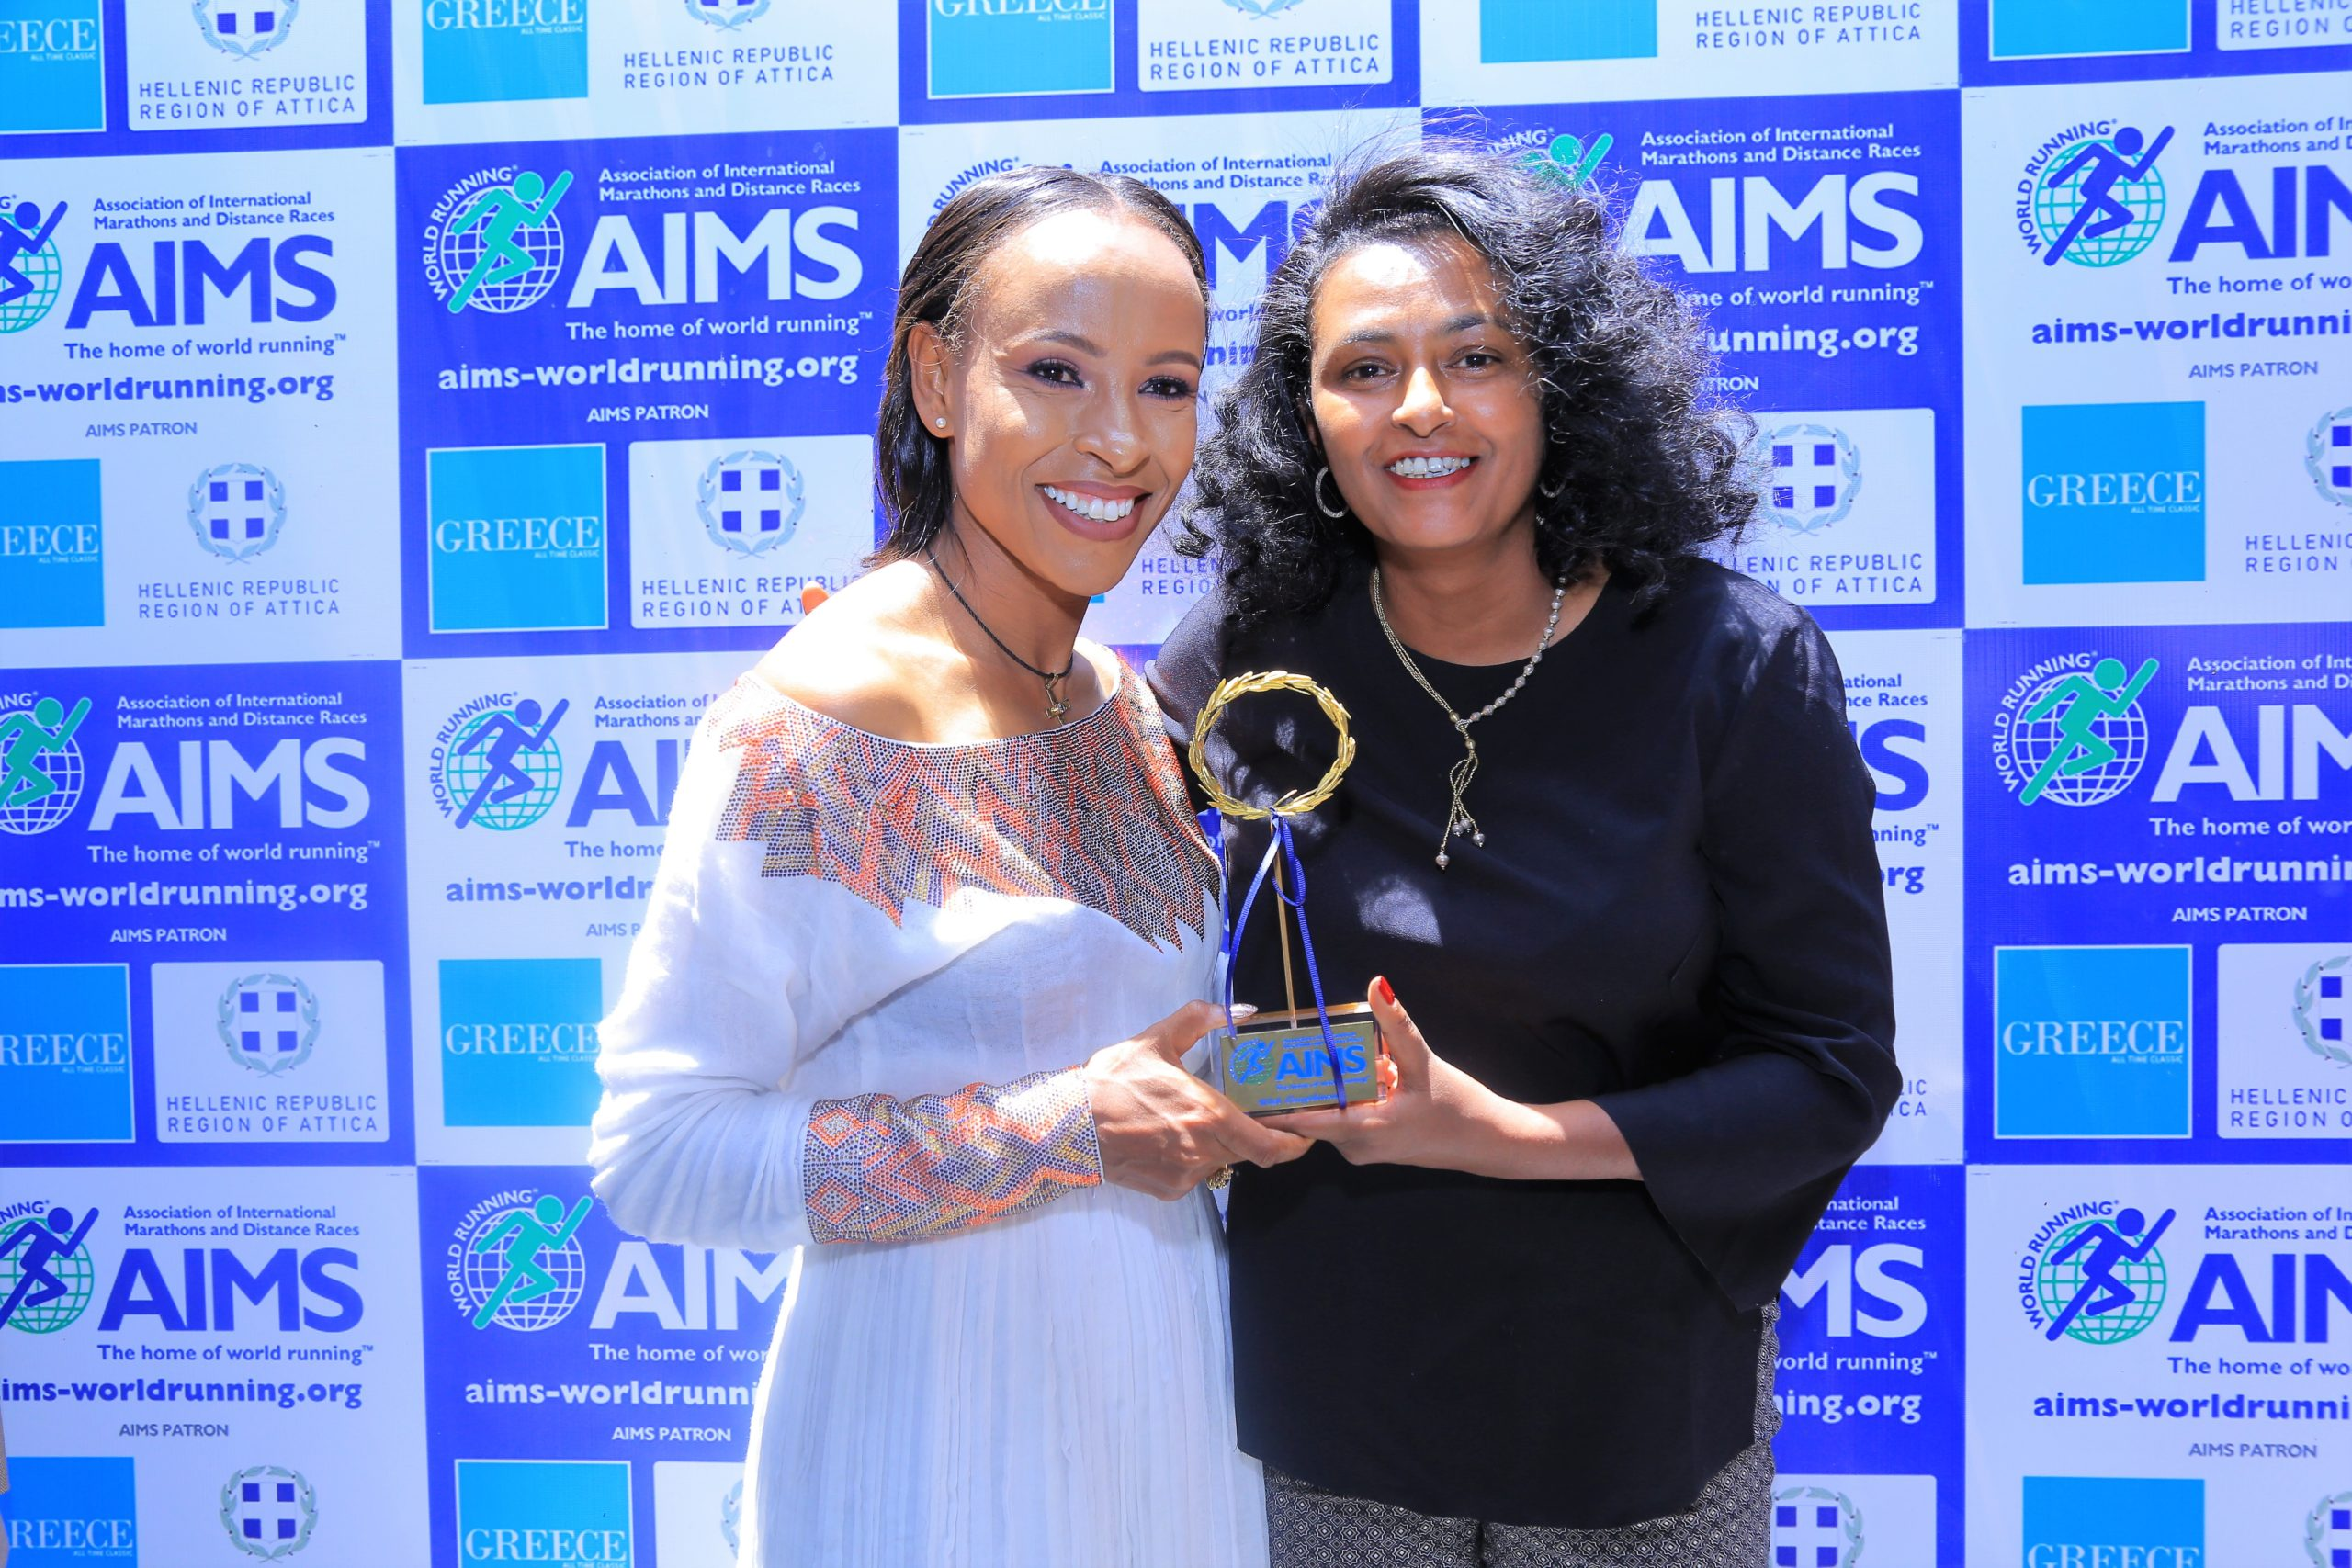 Two-time Ethiopian Olympic Gold Medallist Meseret Defar is presented with the AIMS Inspirational Woman Award